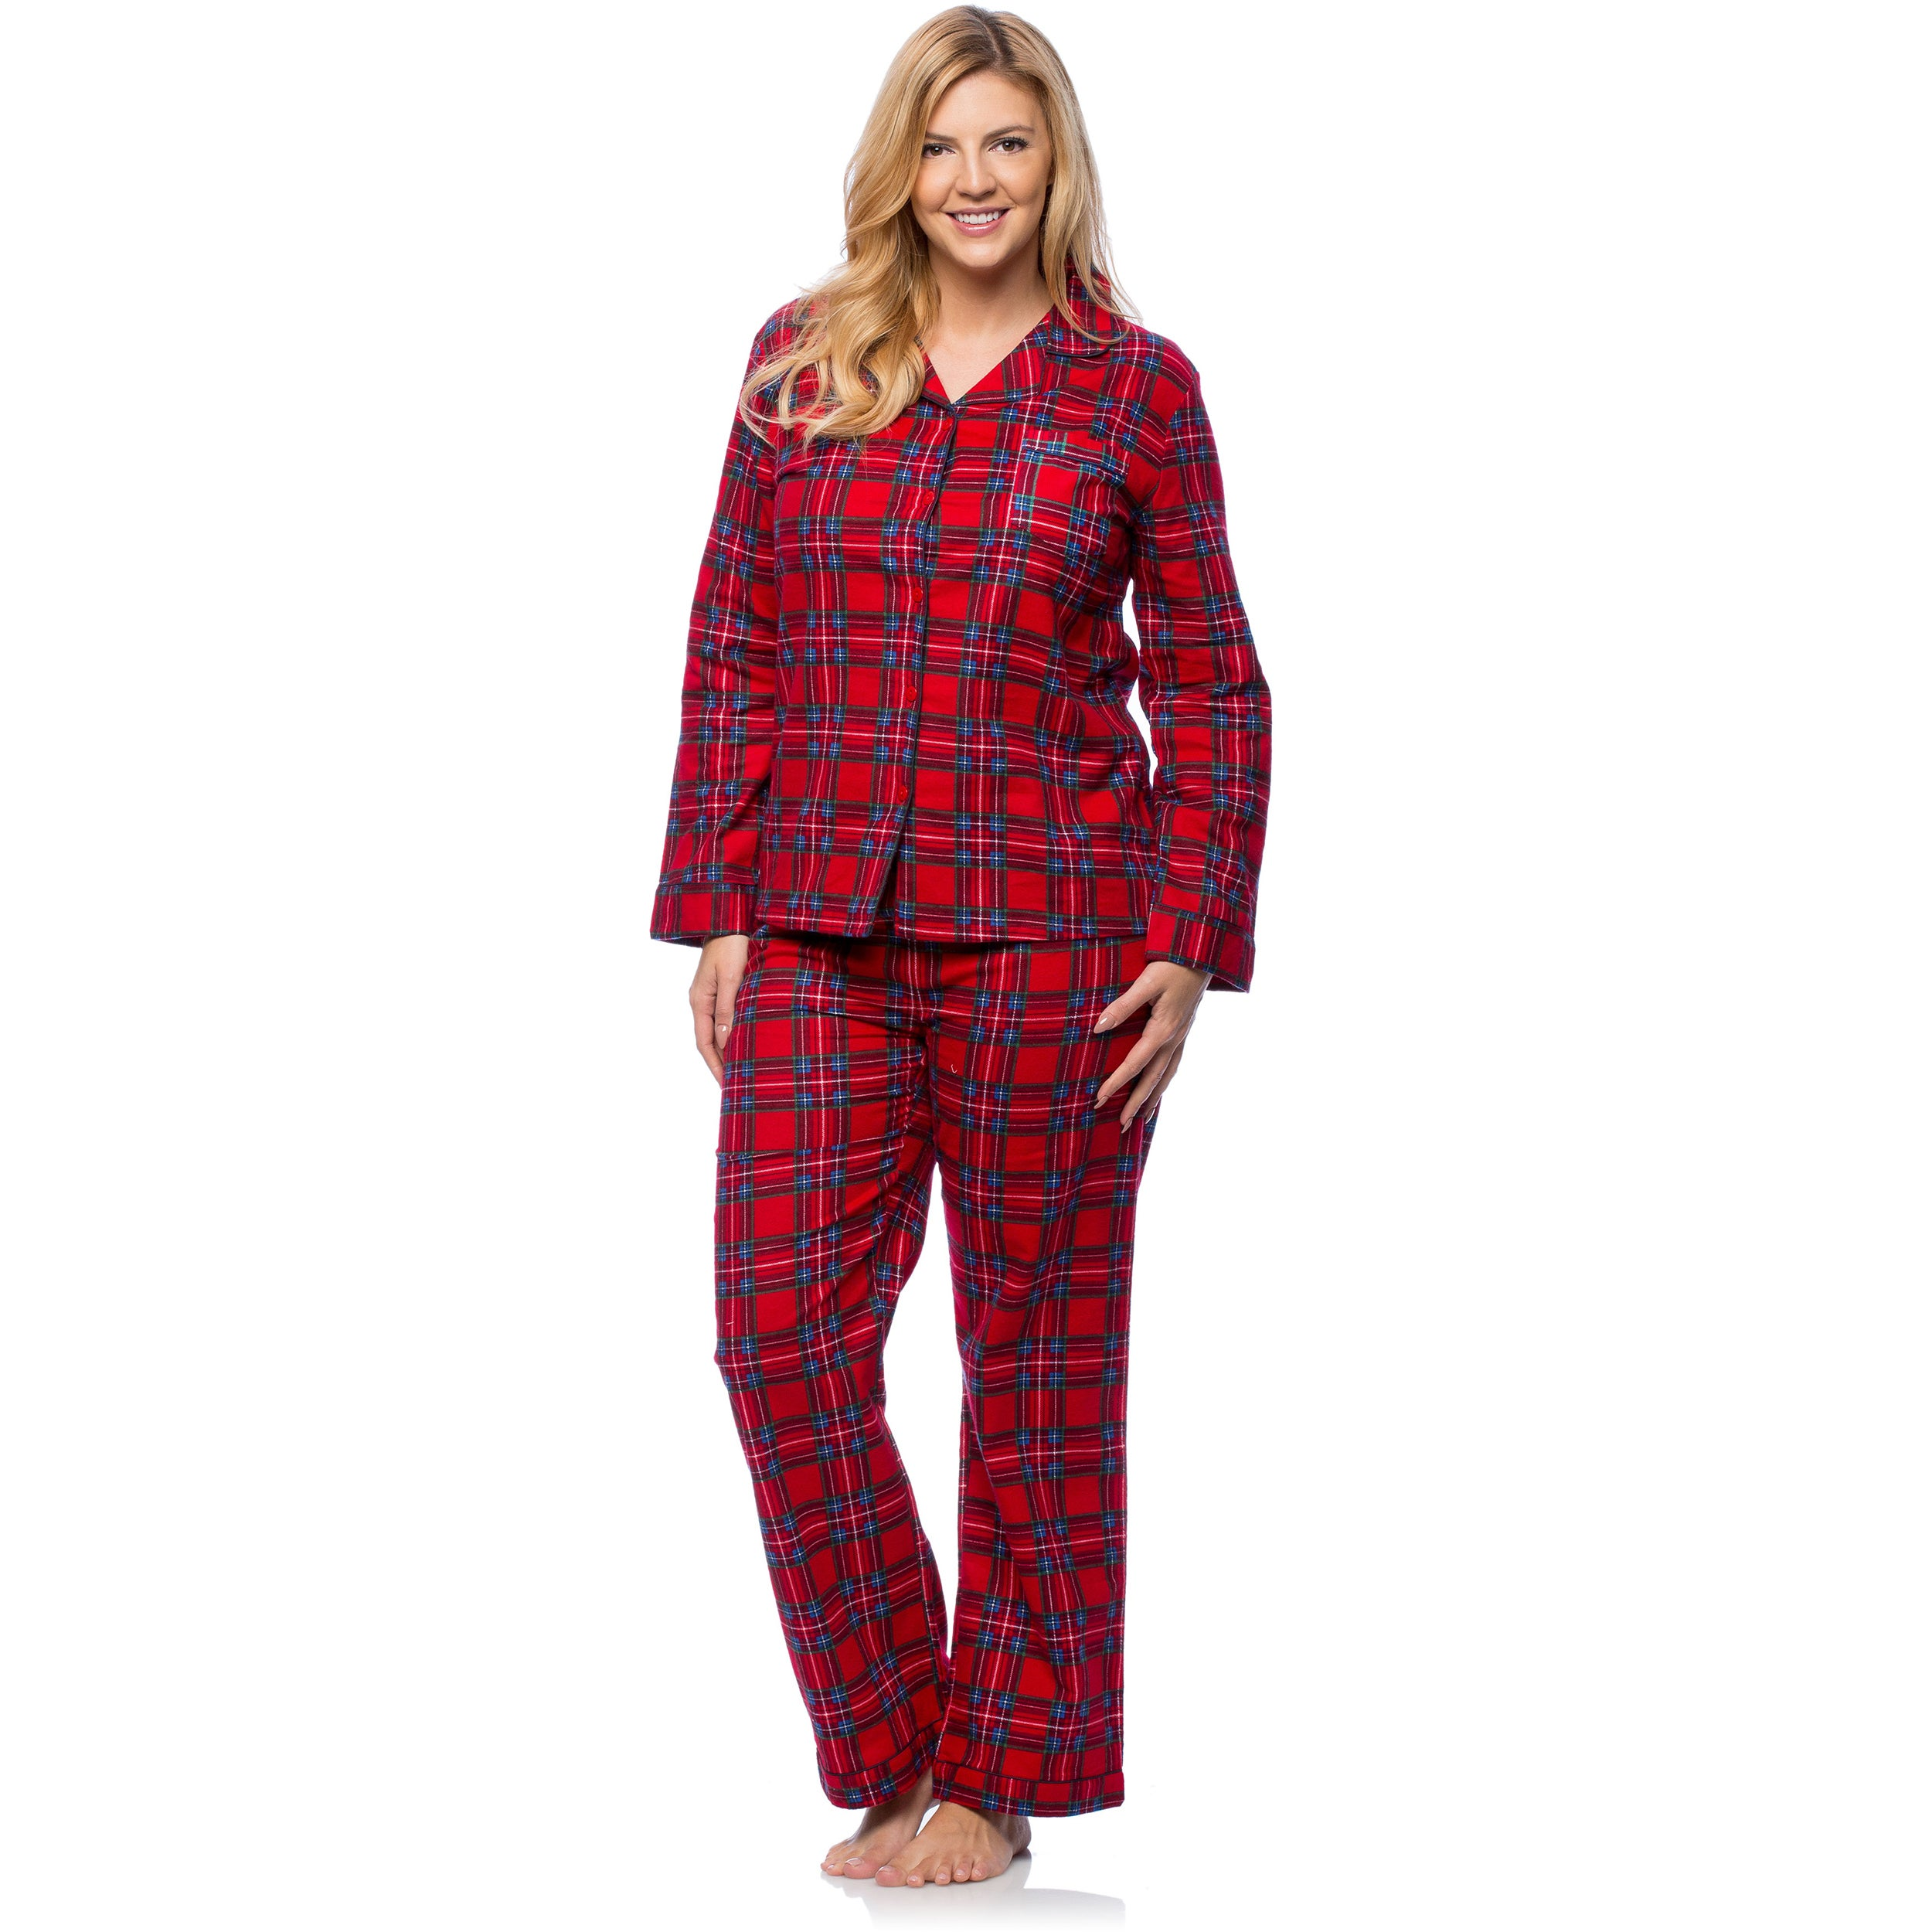 3712209a21 Shop White Mark Women s Plus Size Red Plaid Flannel Slim-Fit Pajama ...